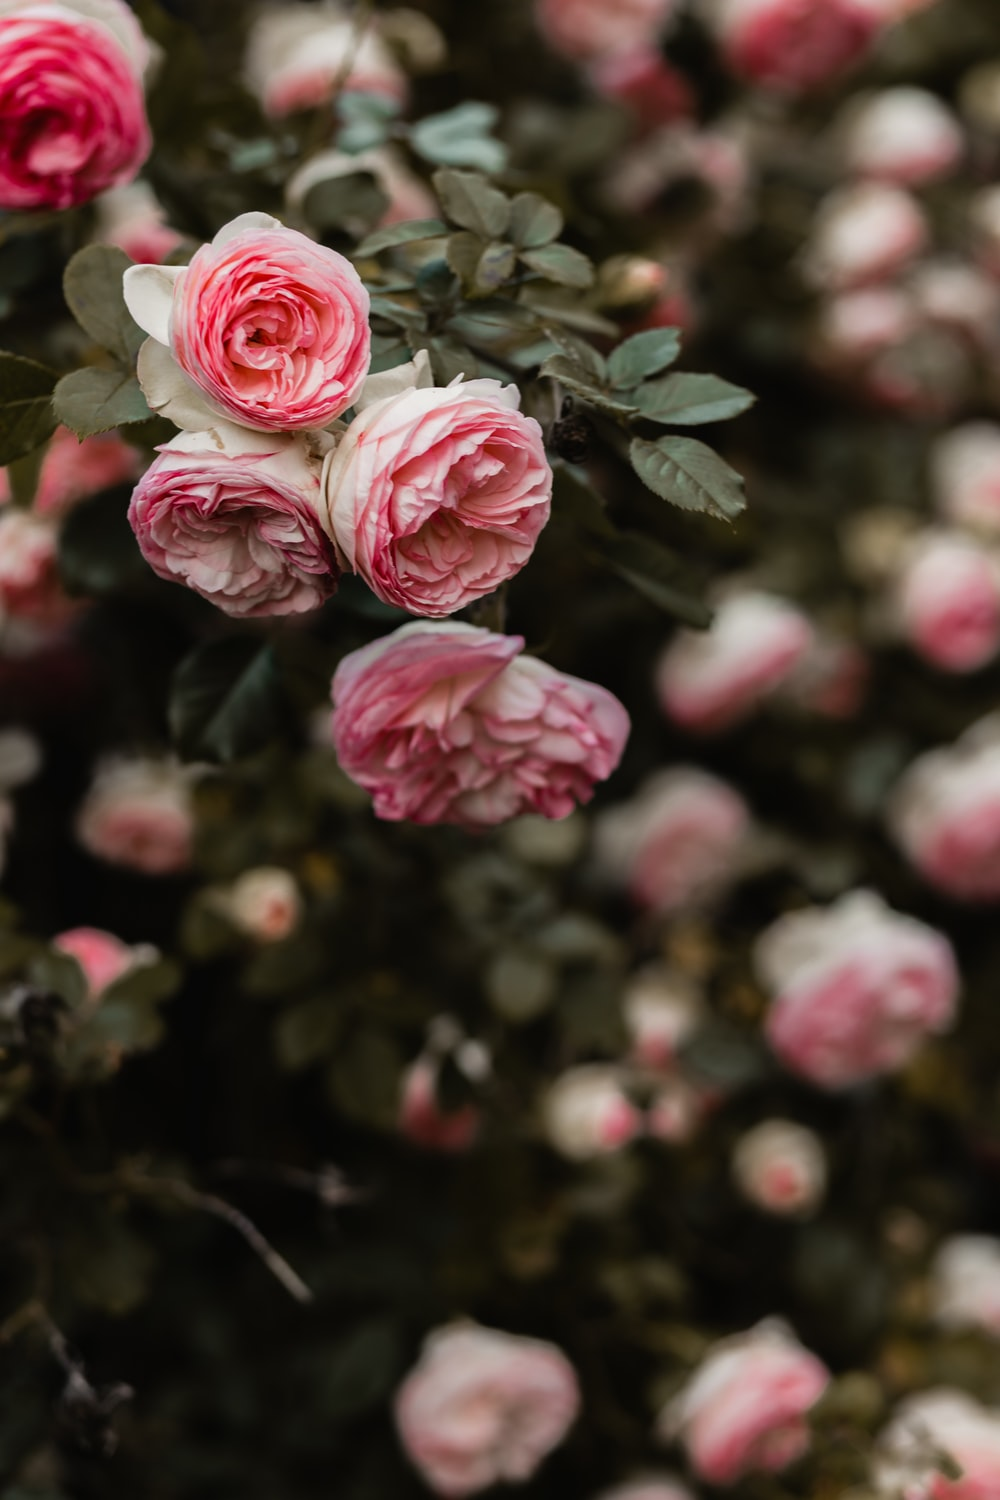 Flower Plant Rose And Pink Flower Hd Photo By Nadia Valkouskaya